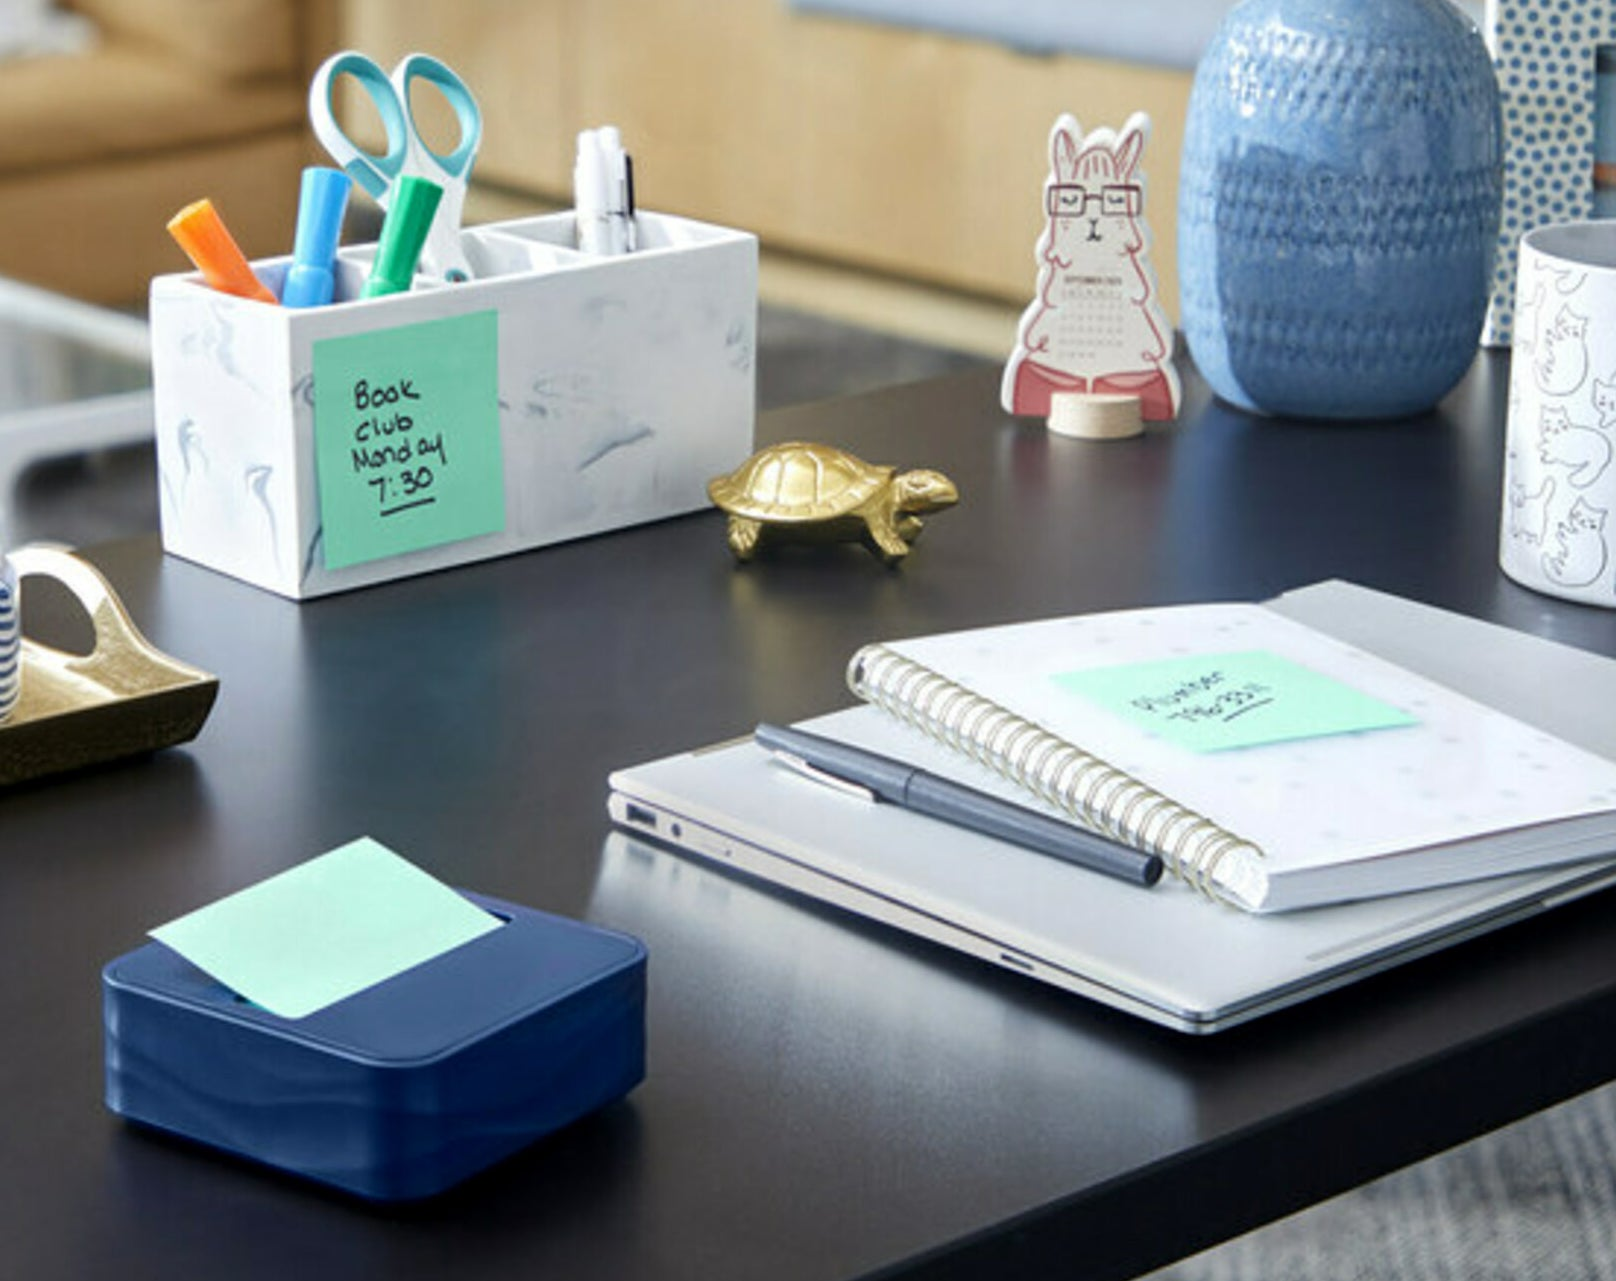 post it notes stuck onto objects on a desk